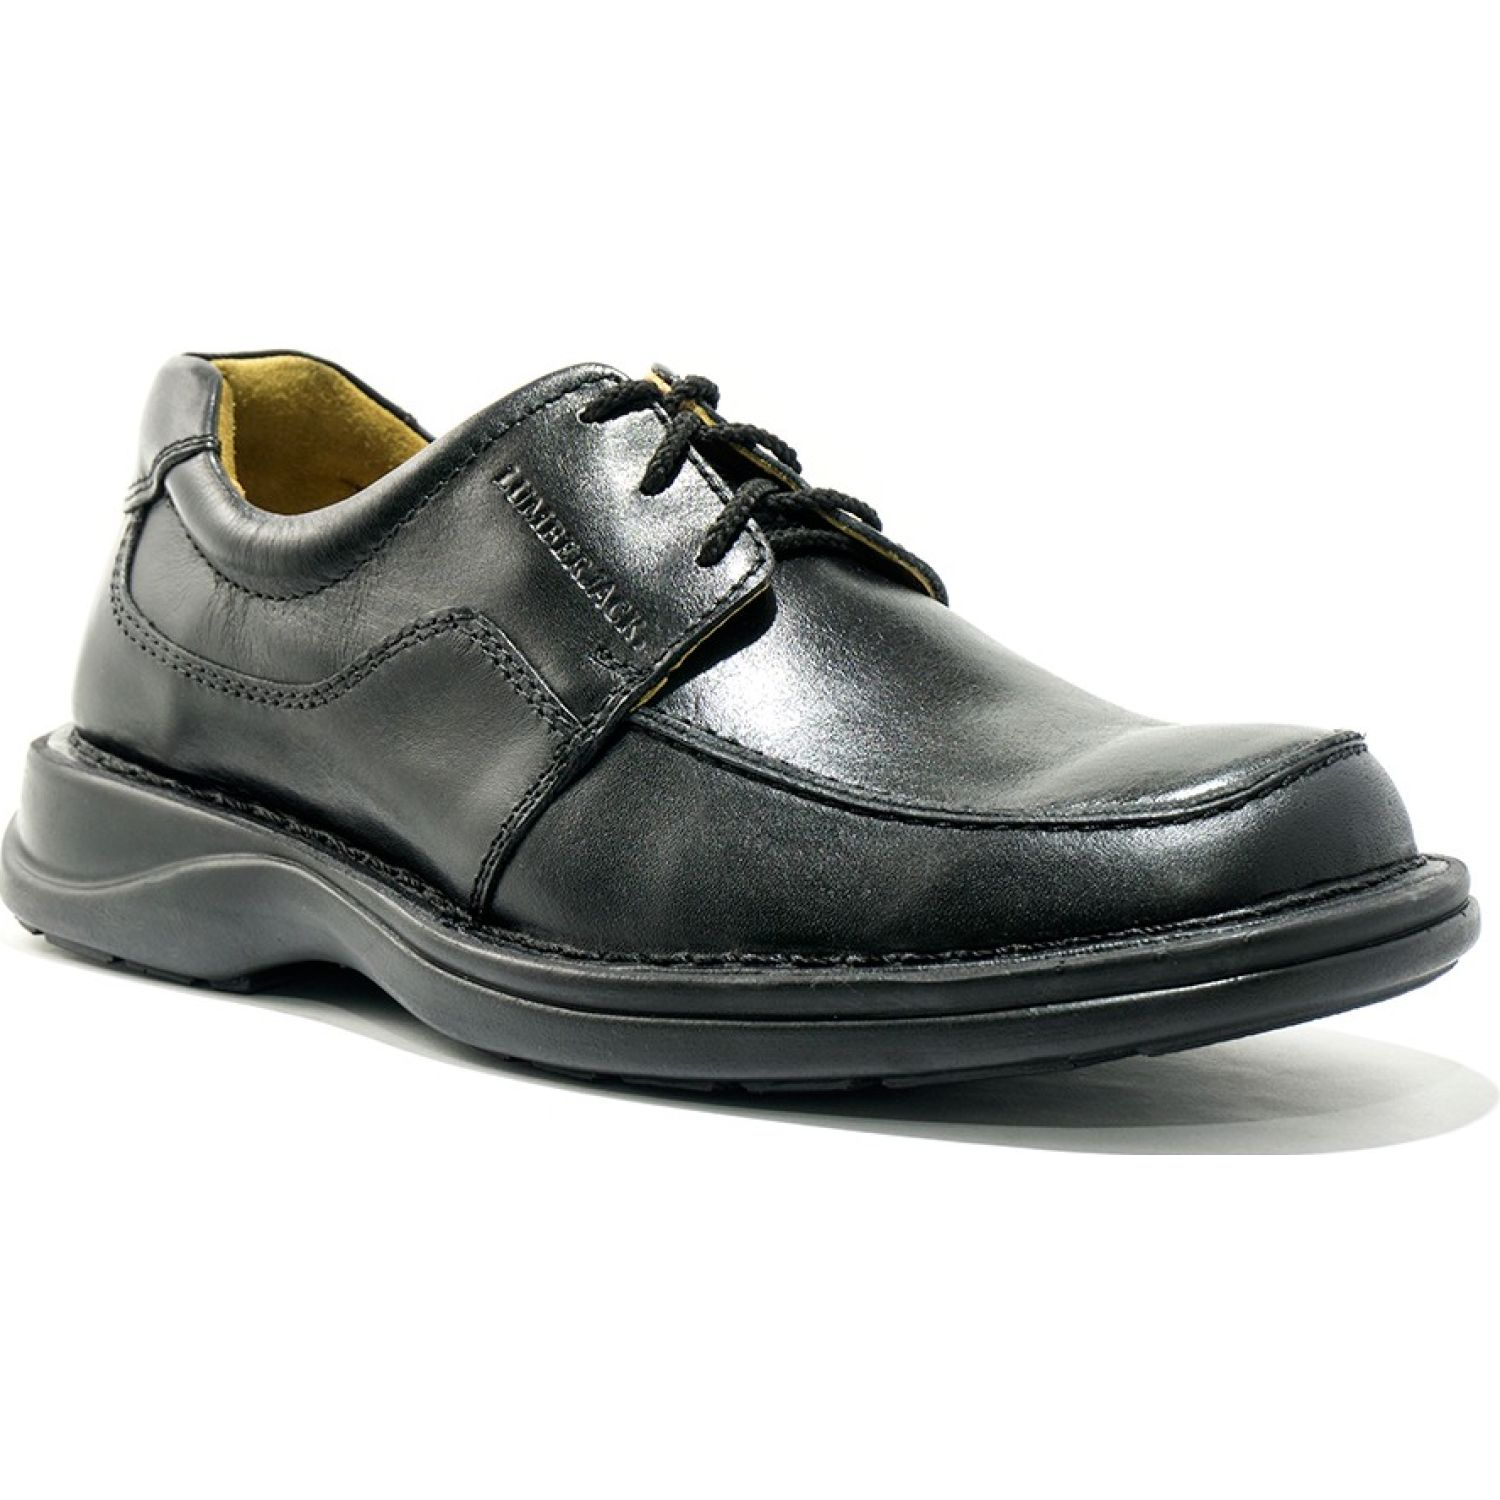 LumberJack  018257-l5 Negro Oxfords